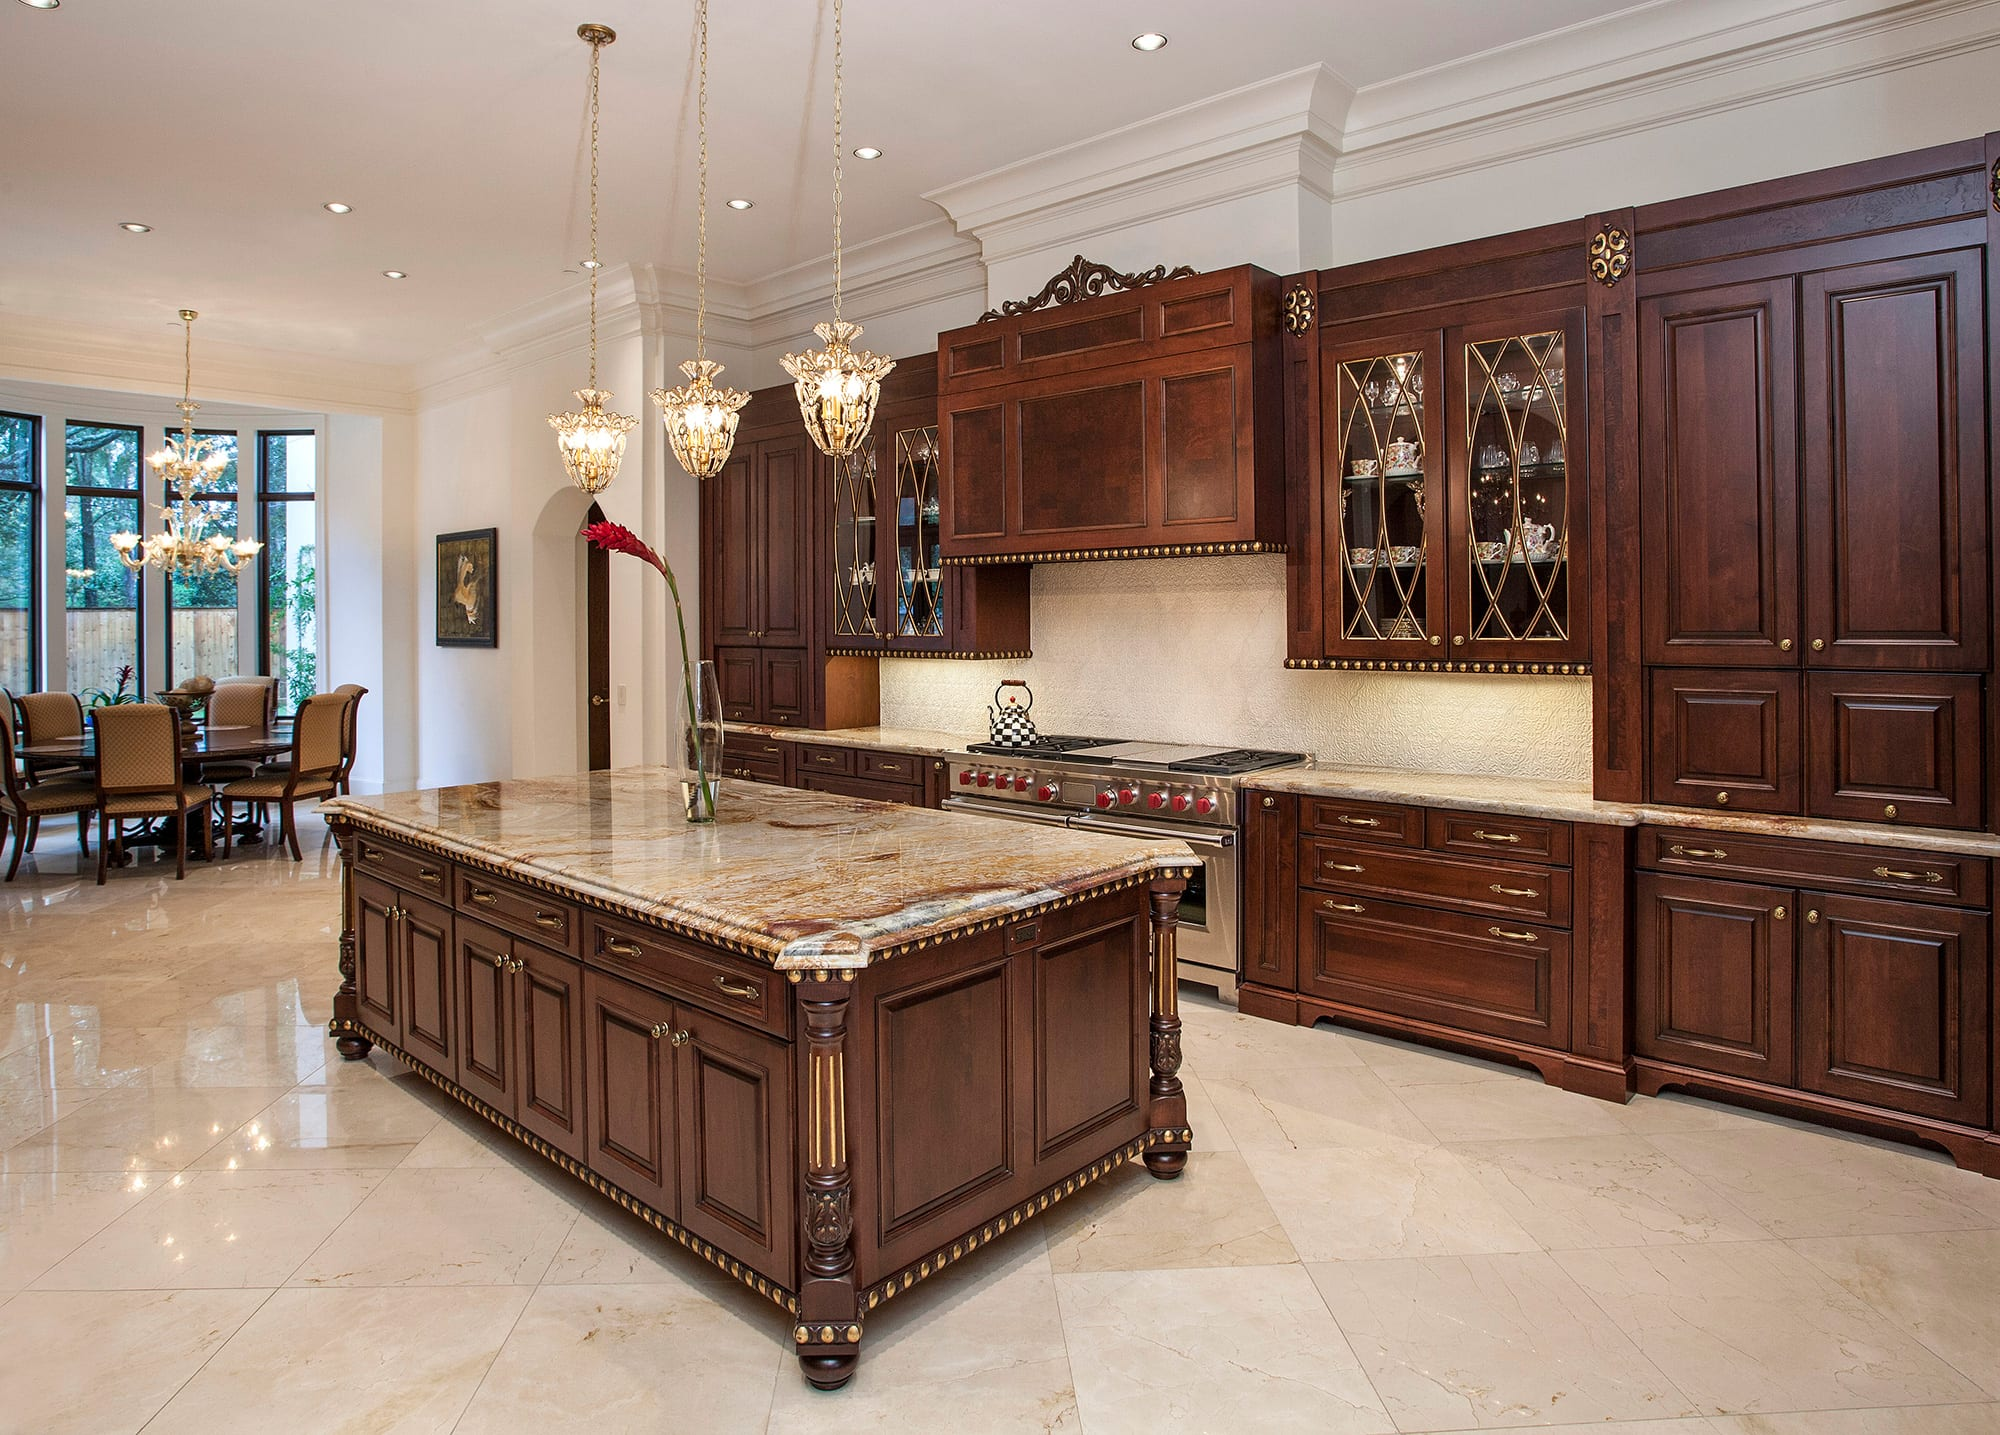 Kitchen Cabinets Gallery Of Images And Ideas Cabinet